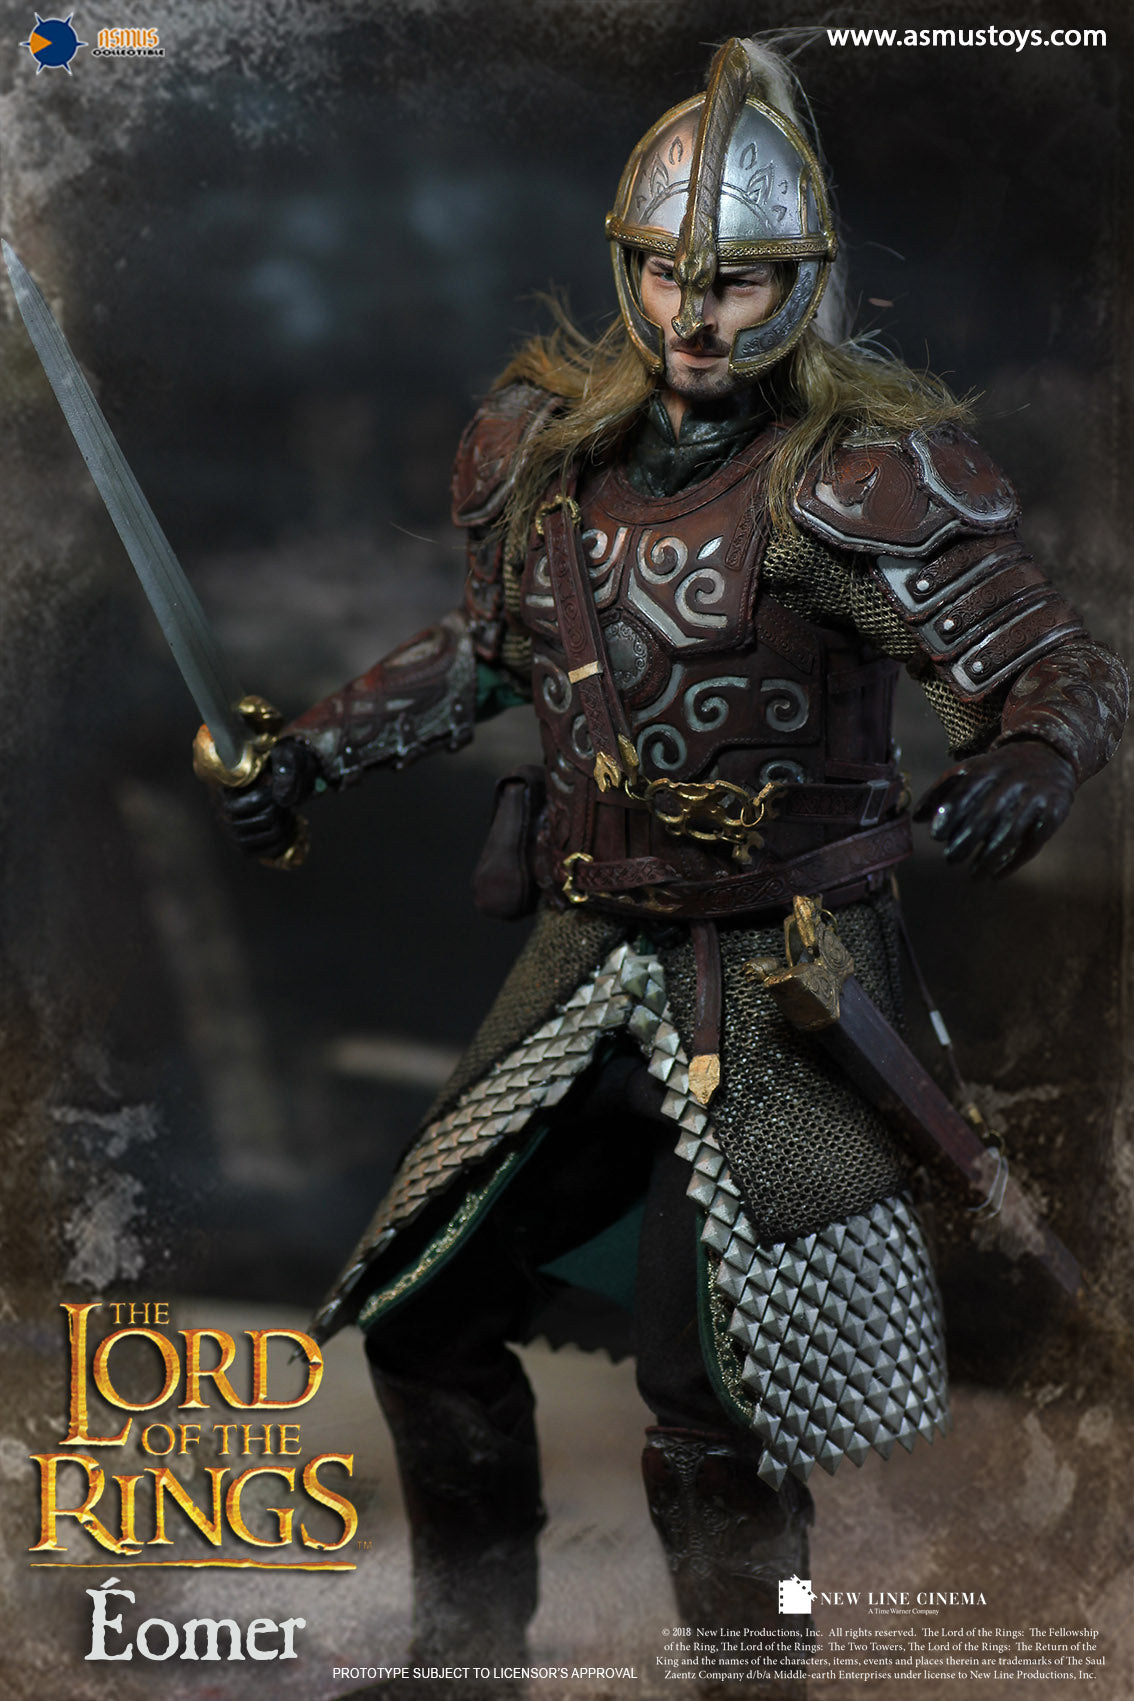 Asmus Toys - Heroes of Middle-Earth - Lord of the Rings - Eomer (1/6 Scale)